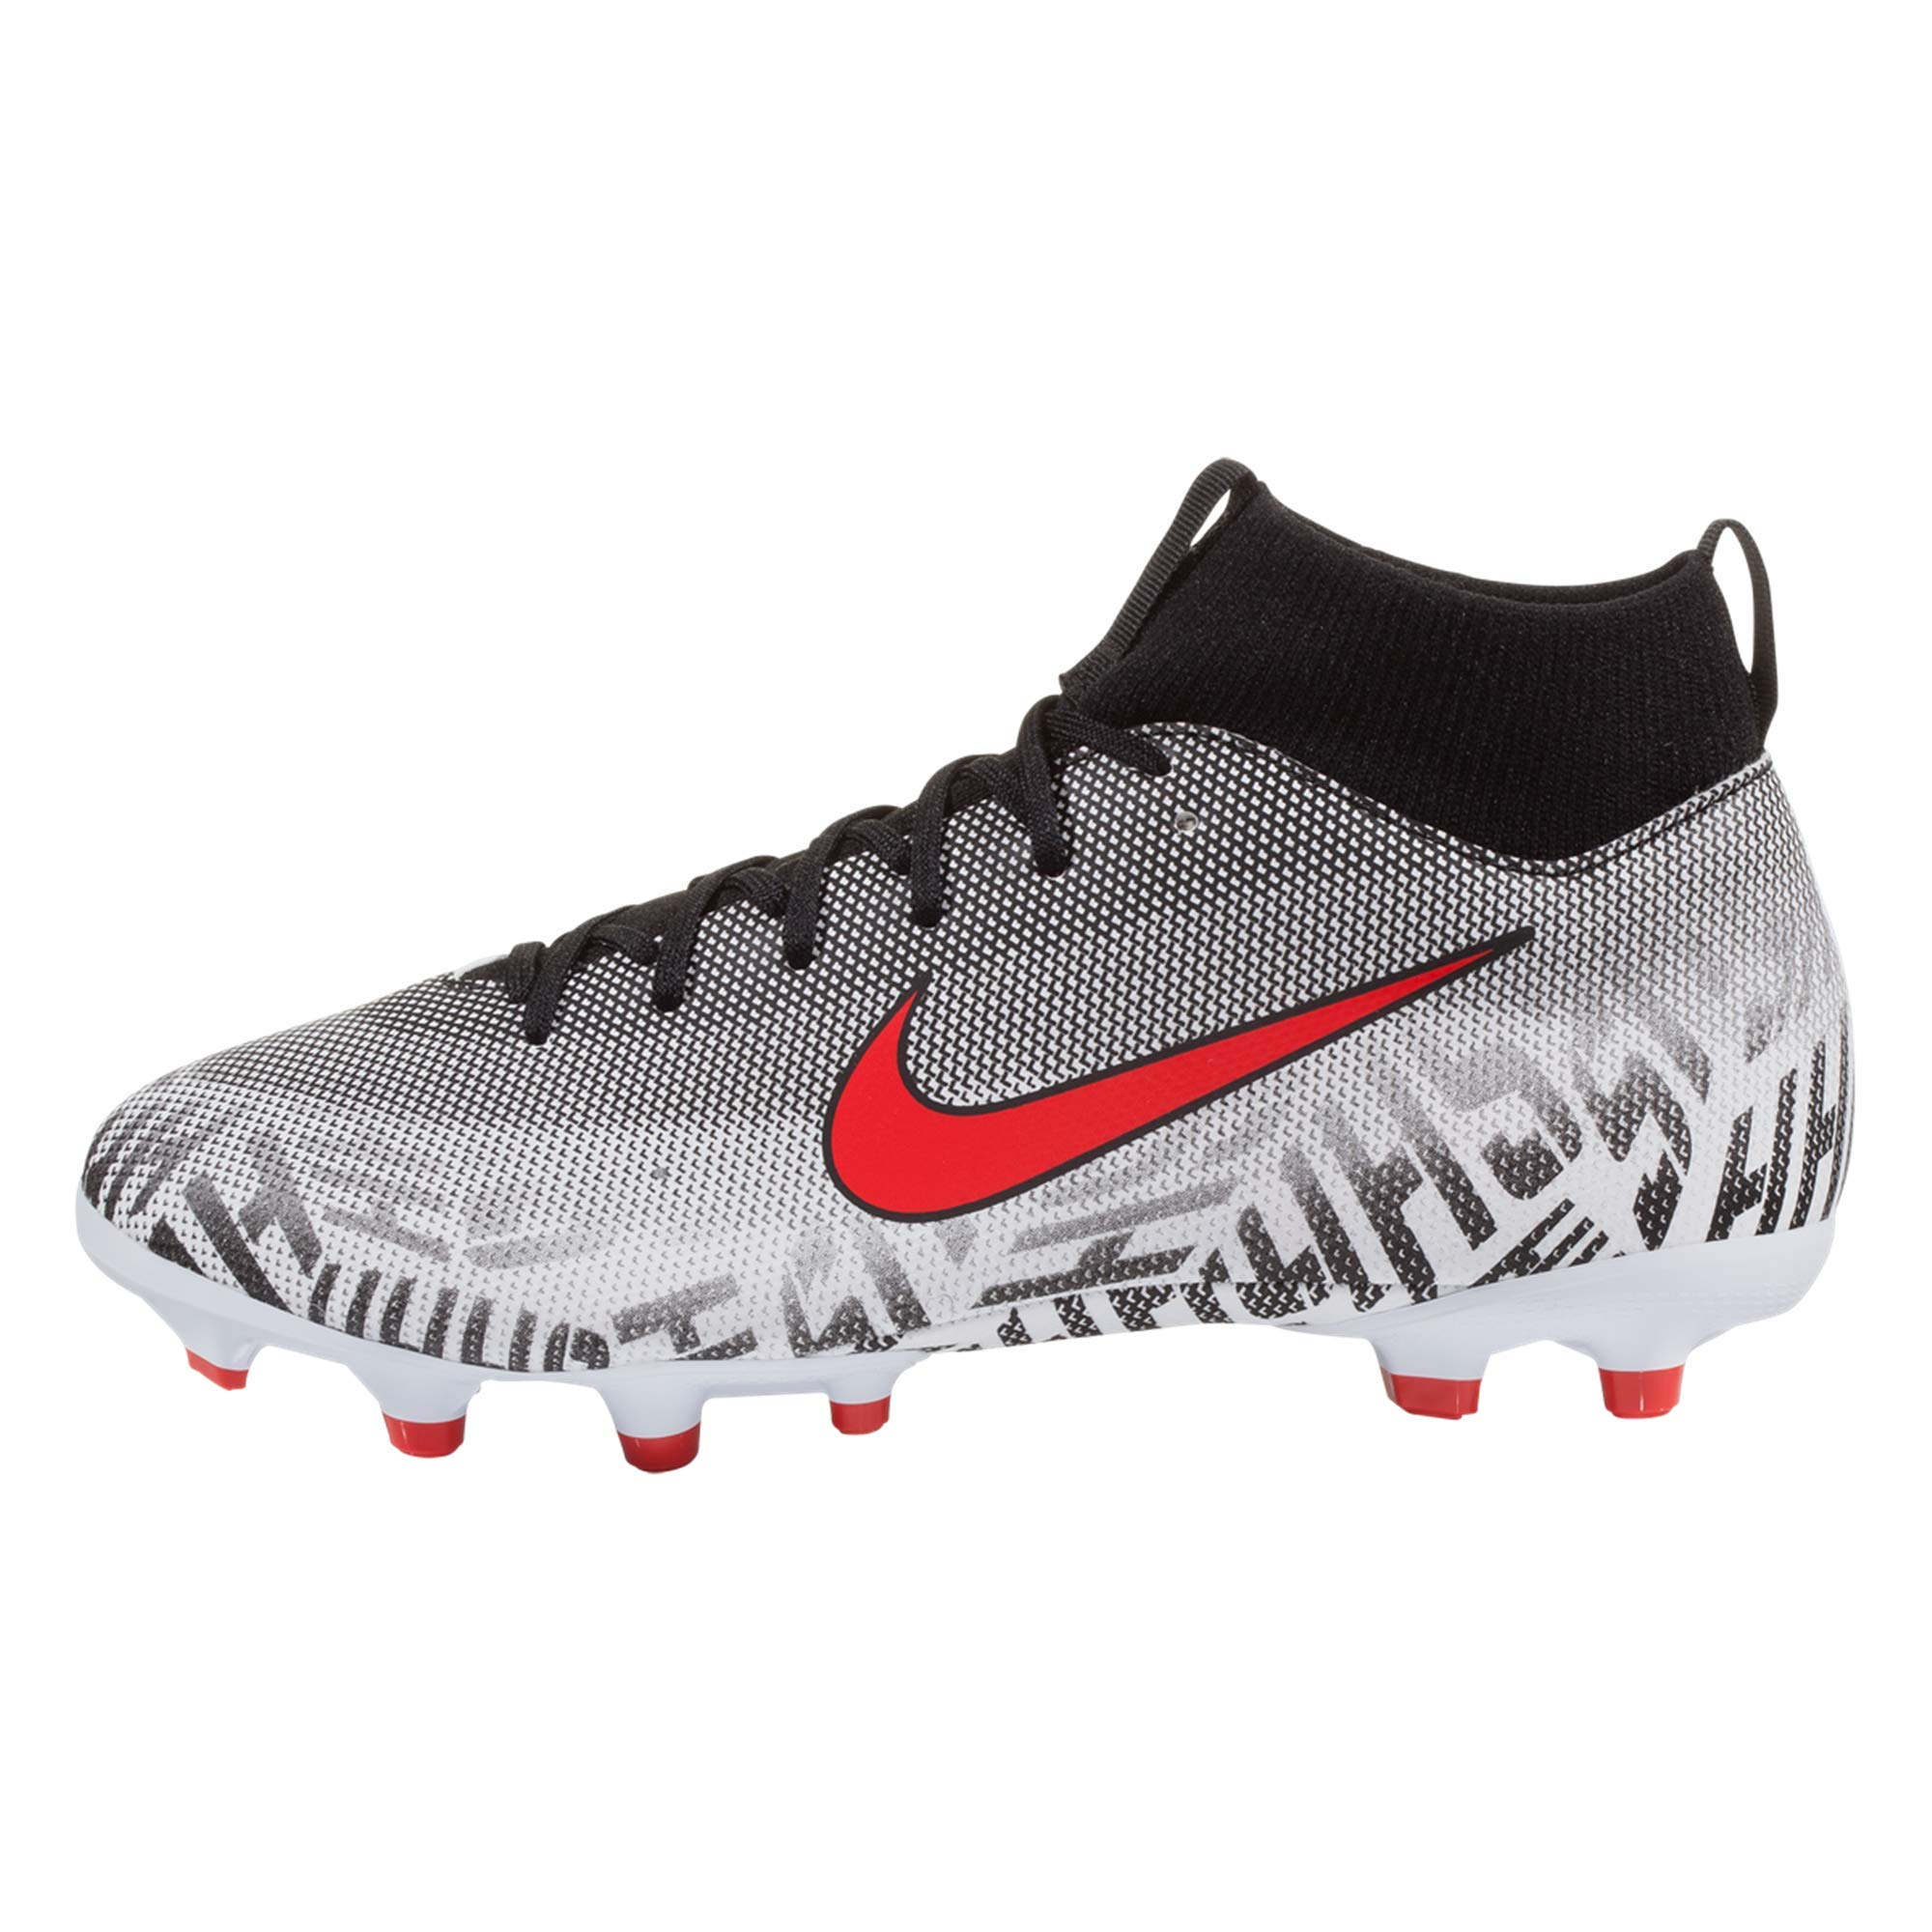 Nike Youth Superfly 6 Academy NJR FG/MG Soccer Cleats-White/Challenge Red/Black (5.5Y)